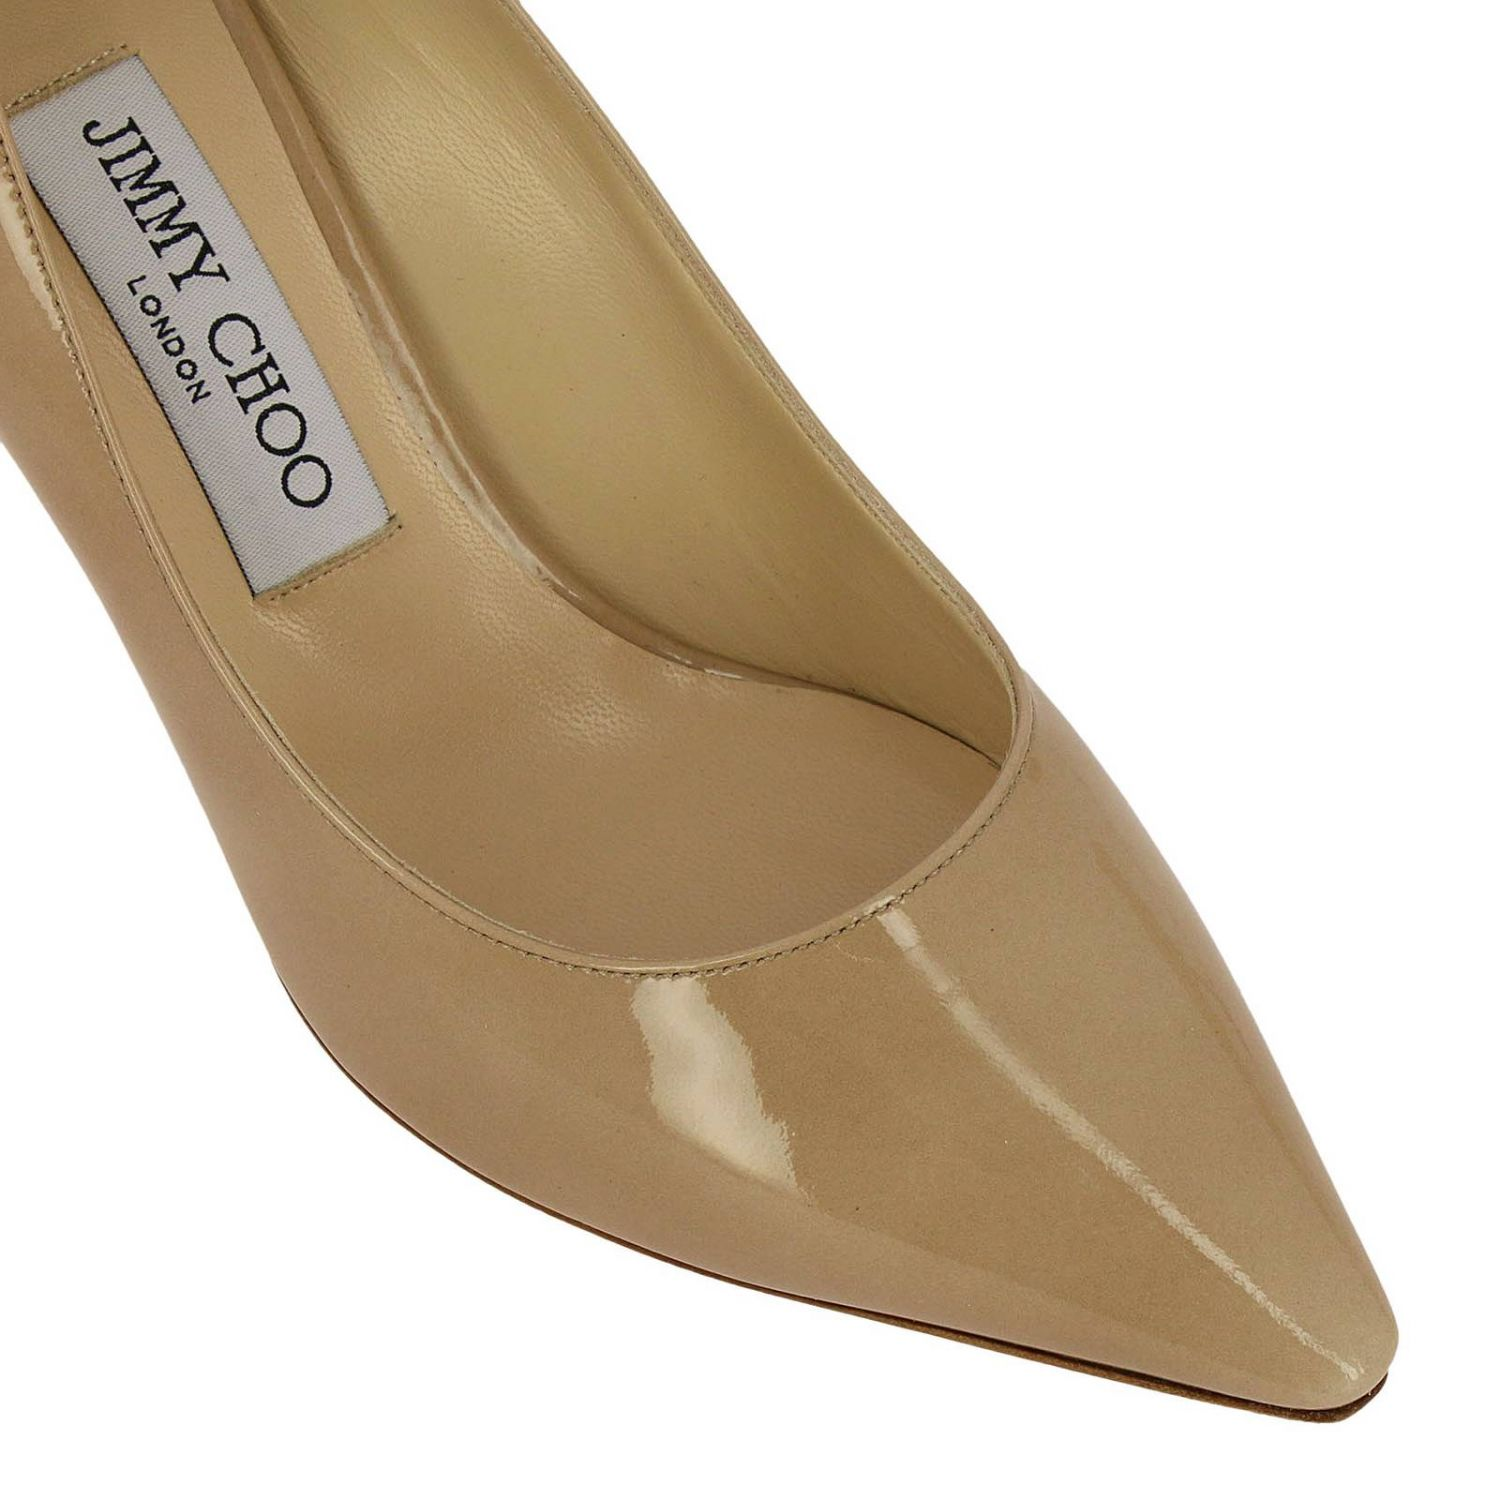 Pumps Jimmy Choo: Jimmy Choo Romy décolleté in patent leather nude 3